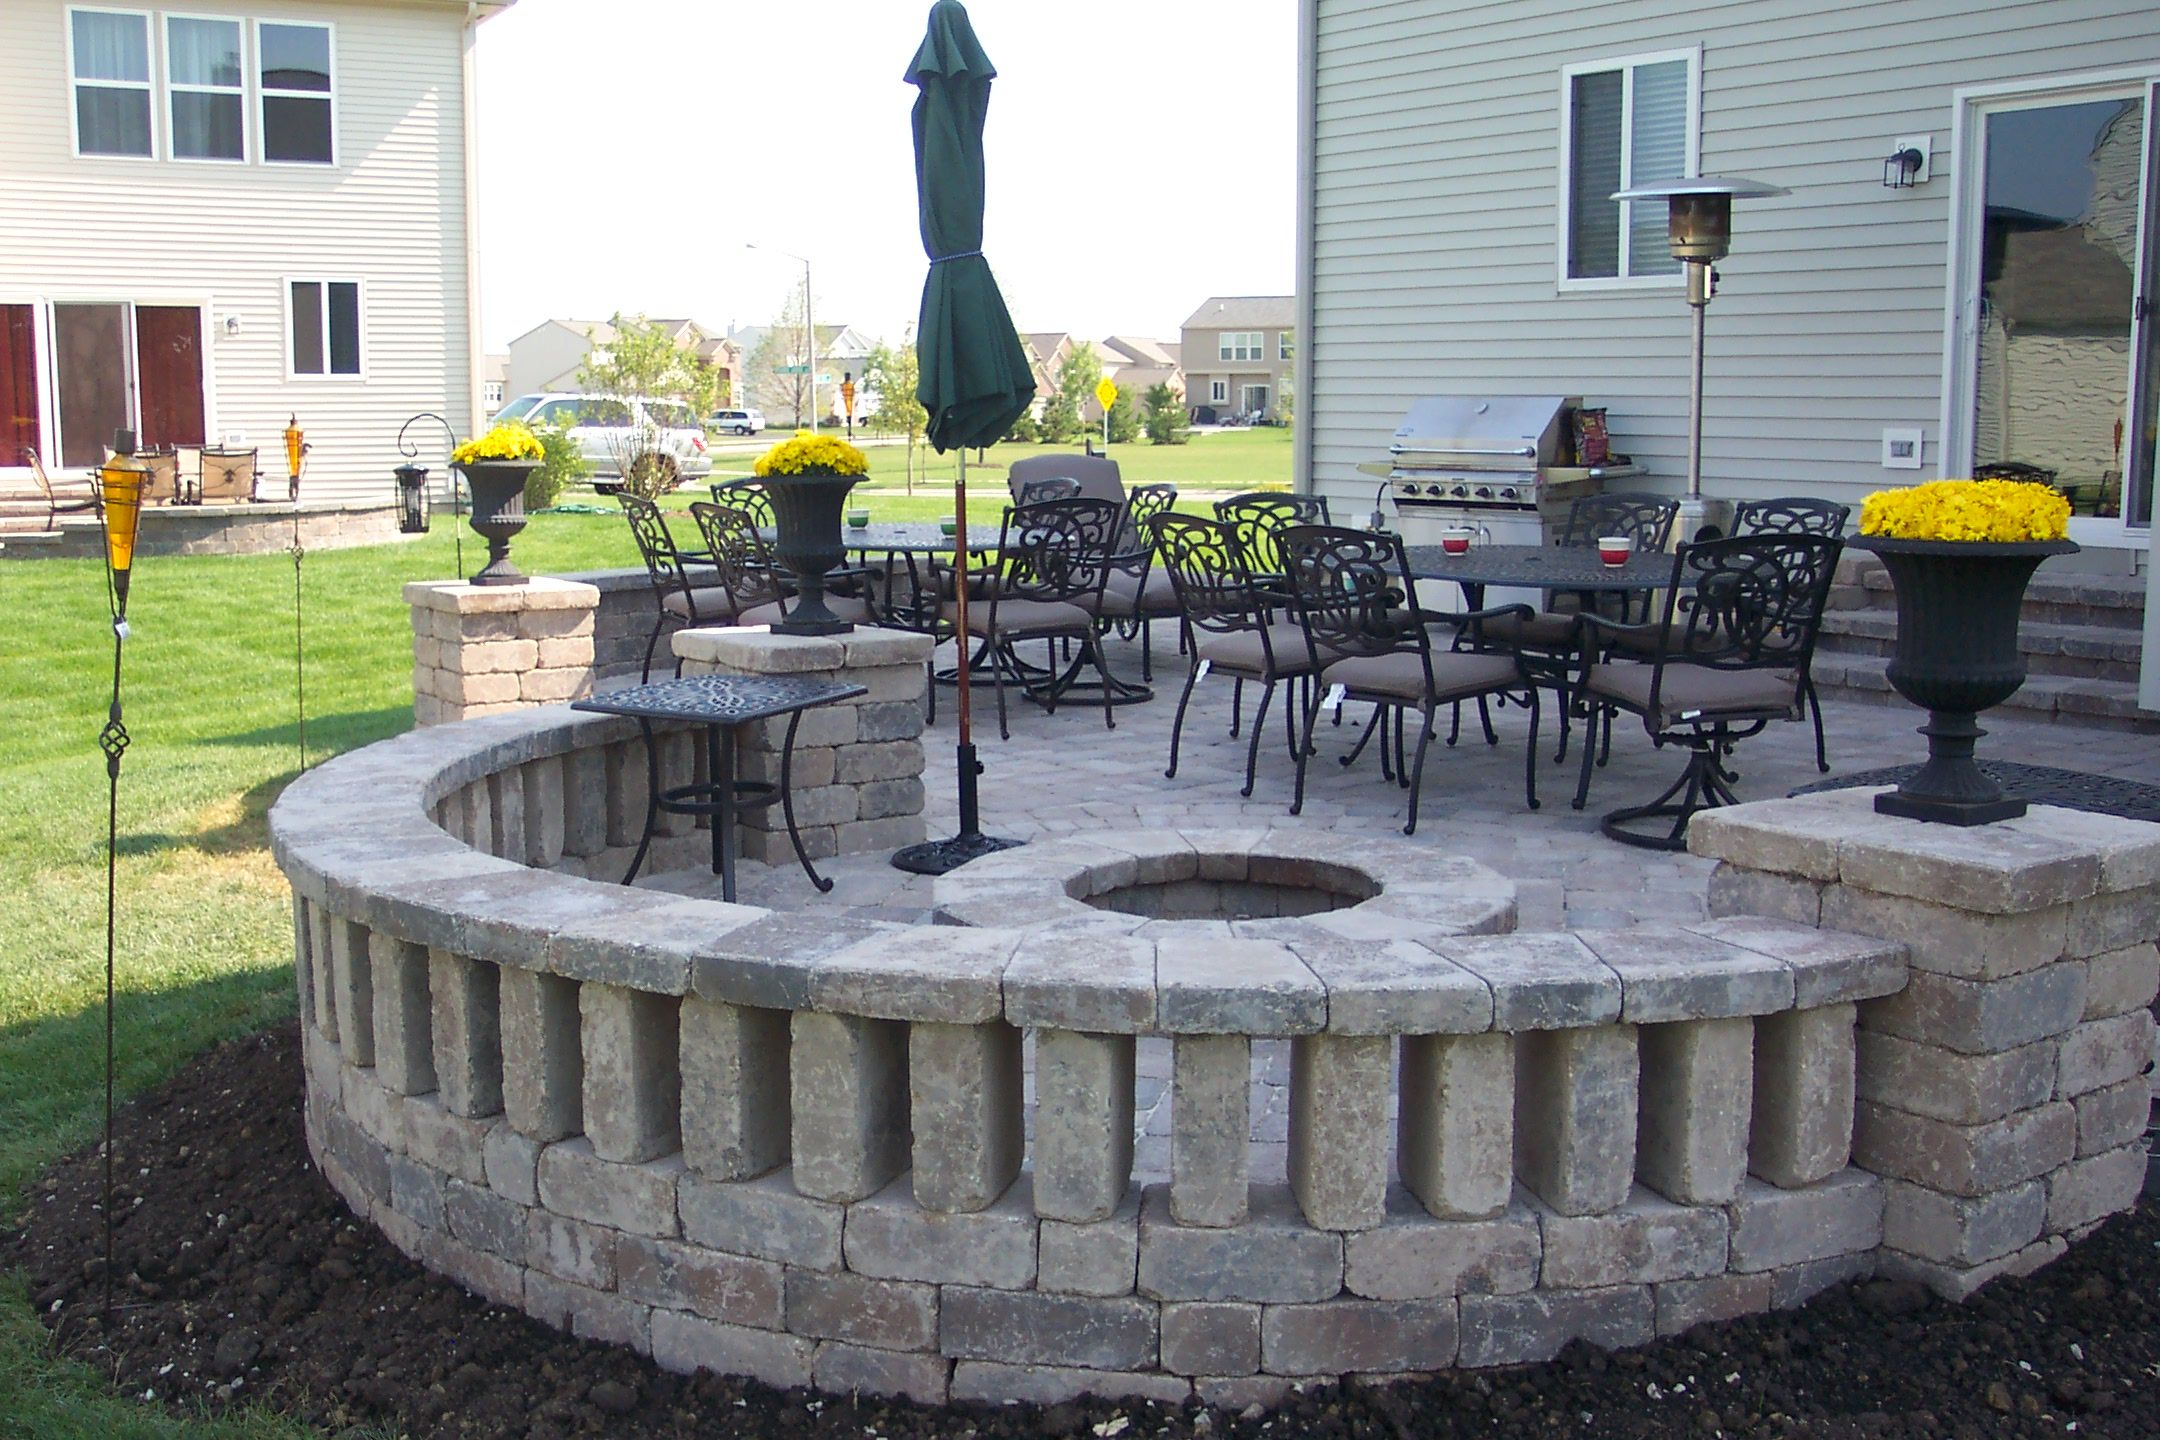 Patio Ideas: Patio Block Ideas With Round Brick Patern And Small Fountain  Ideas